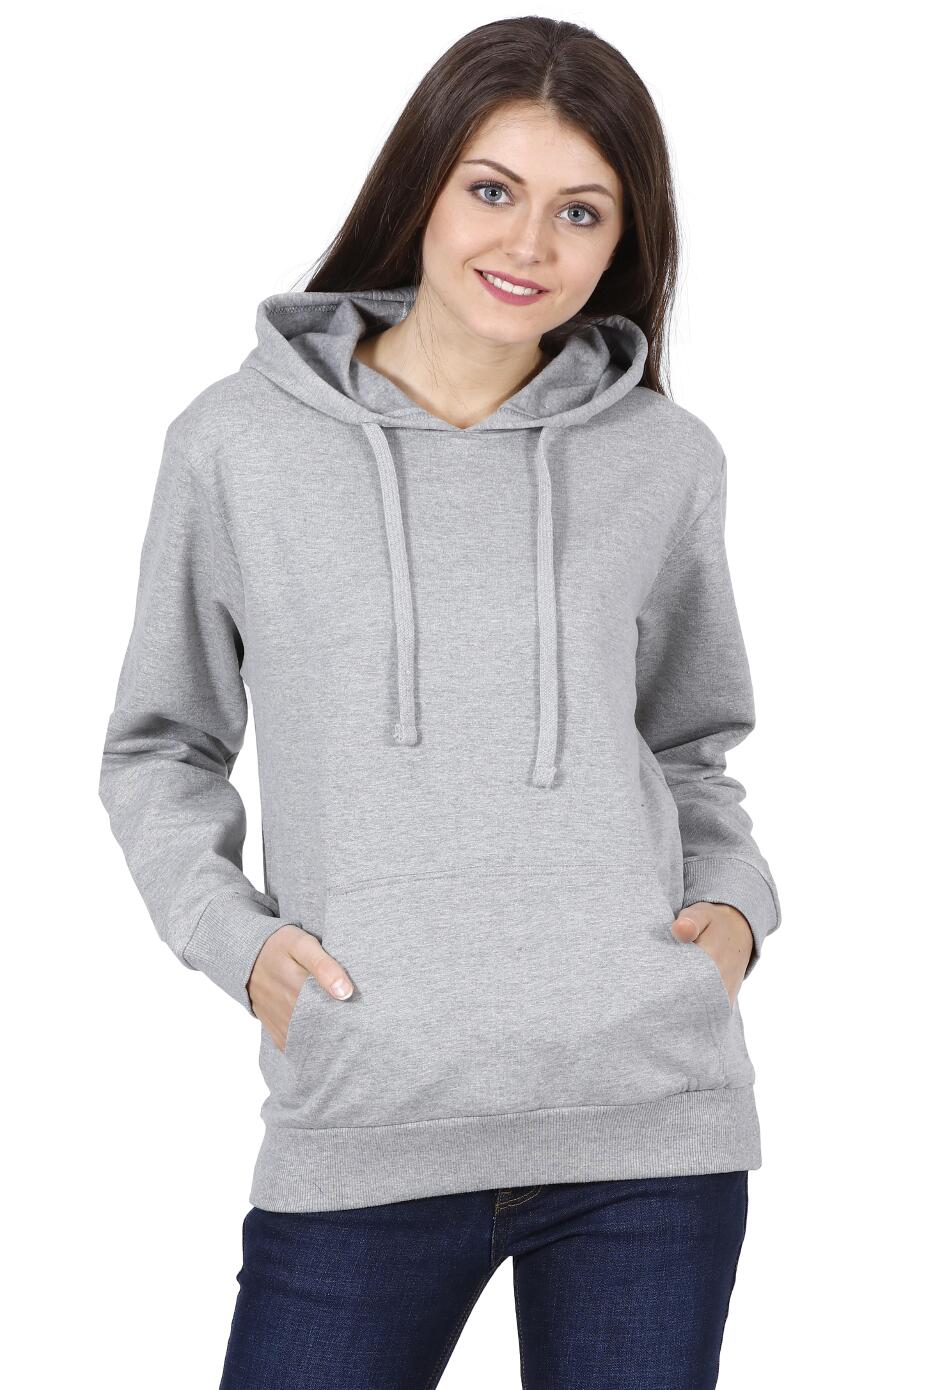 hoodies for girls online